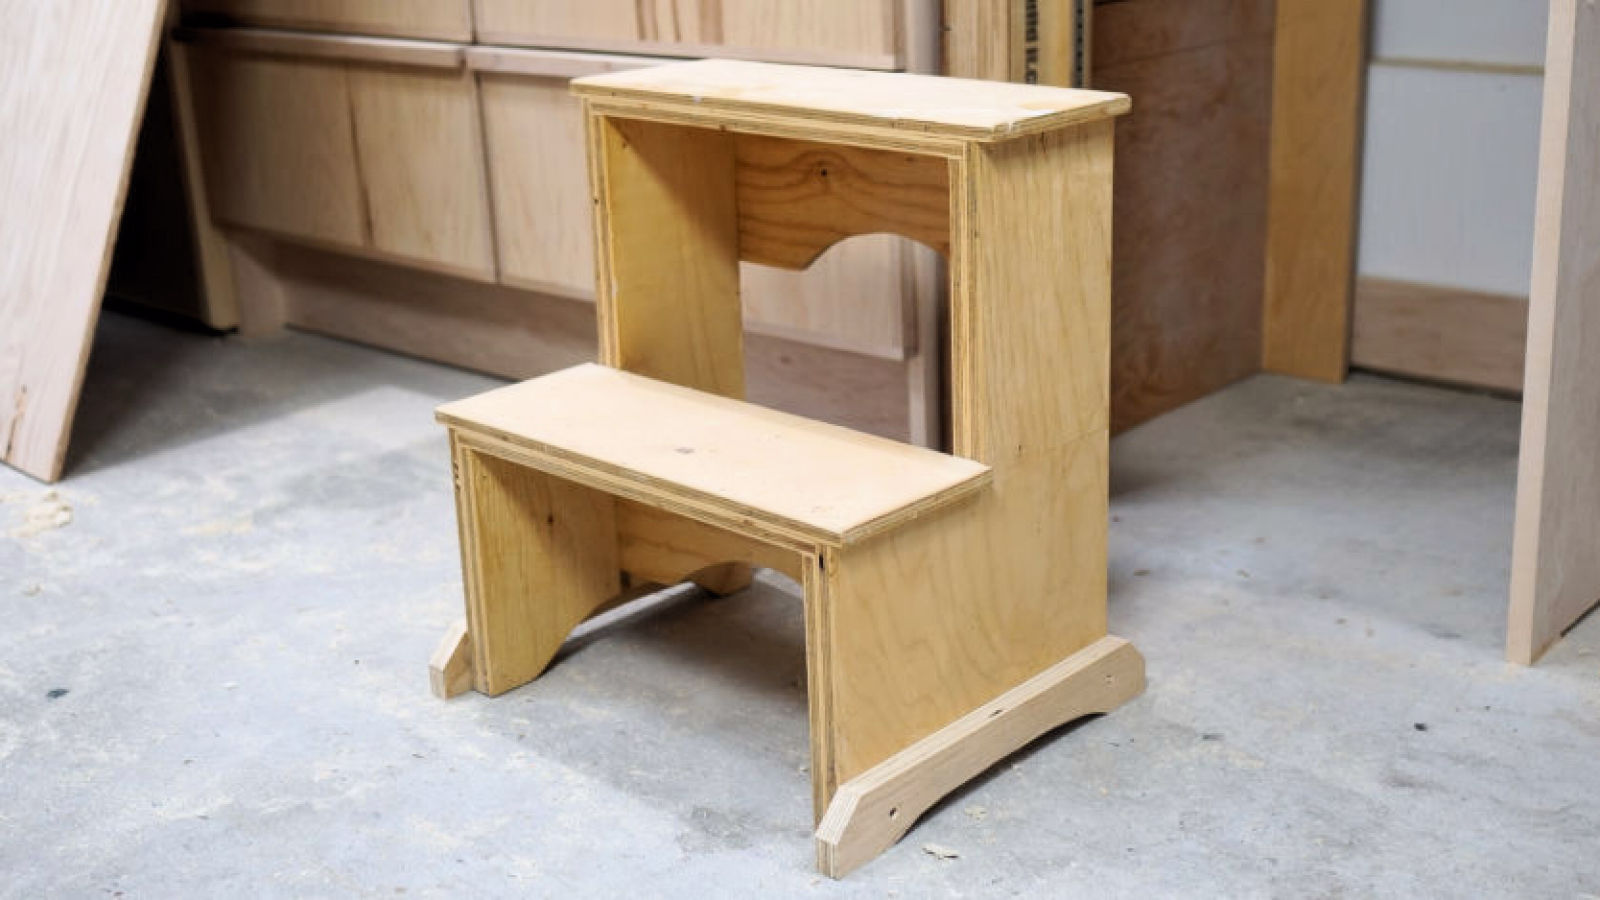 How To Make A Step Stool From Plywood Ibuildit Ca